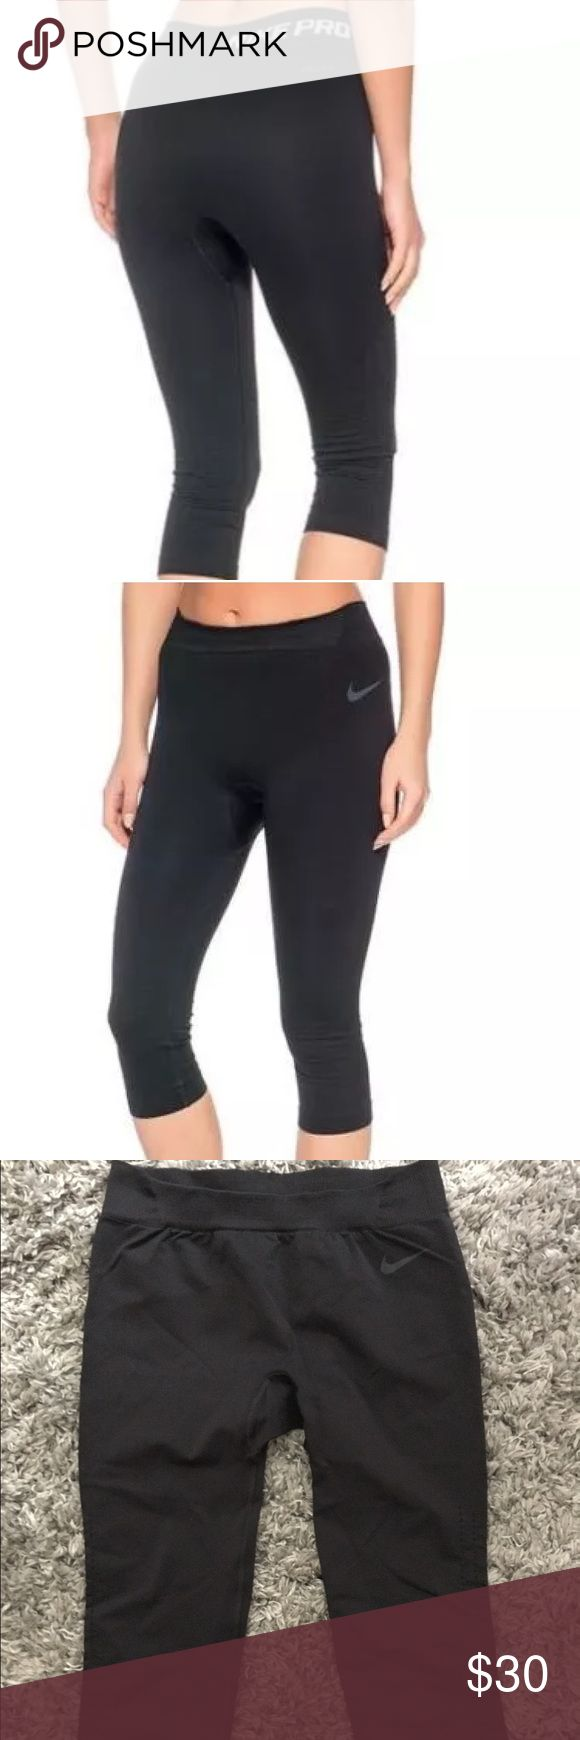 Nike Pro hypercool limitless seamless capris Sz S Nike Pro hypercool limitless seamless capris leggings Sz S in Black. Worn one time! Like New!                                                     SEAMLESS COMFORT The smooth, body-hugging fit and ventilated support of the Nike Pro Hypercool Limitless Women's Training Capri make these a go-to base layer for the gym. Nike Pants Capris